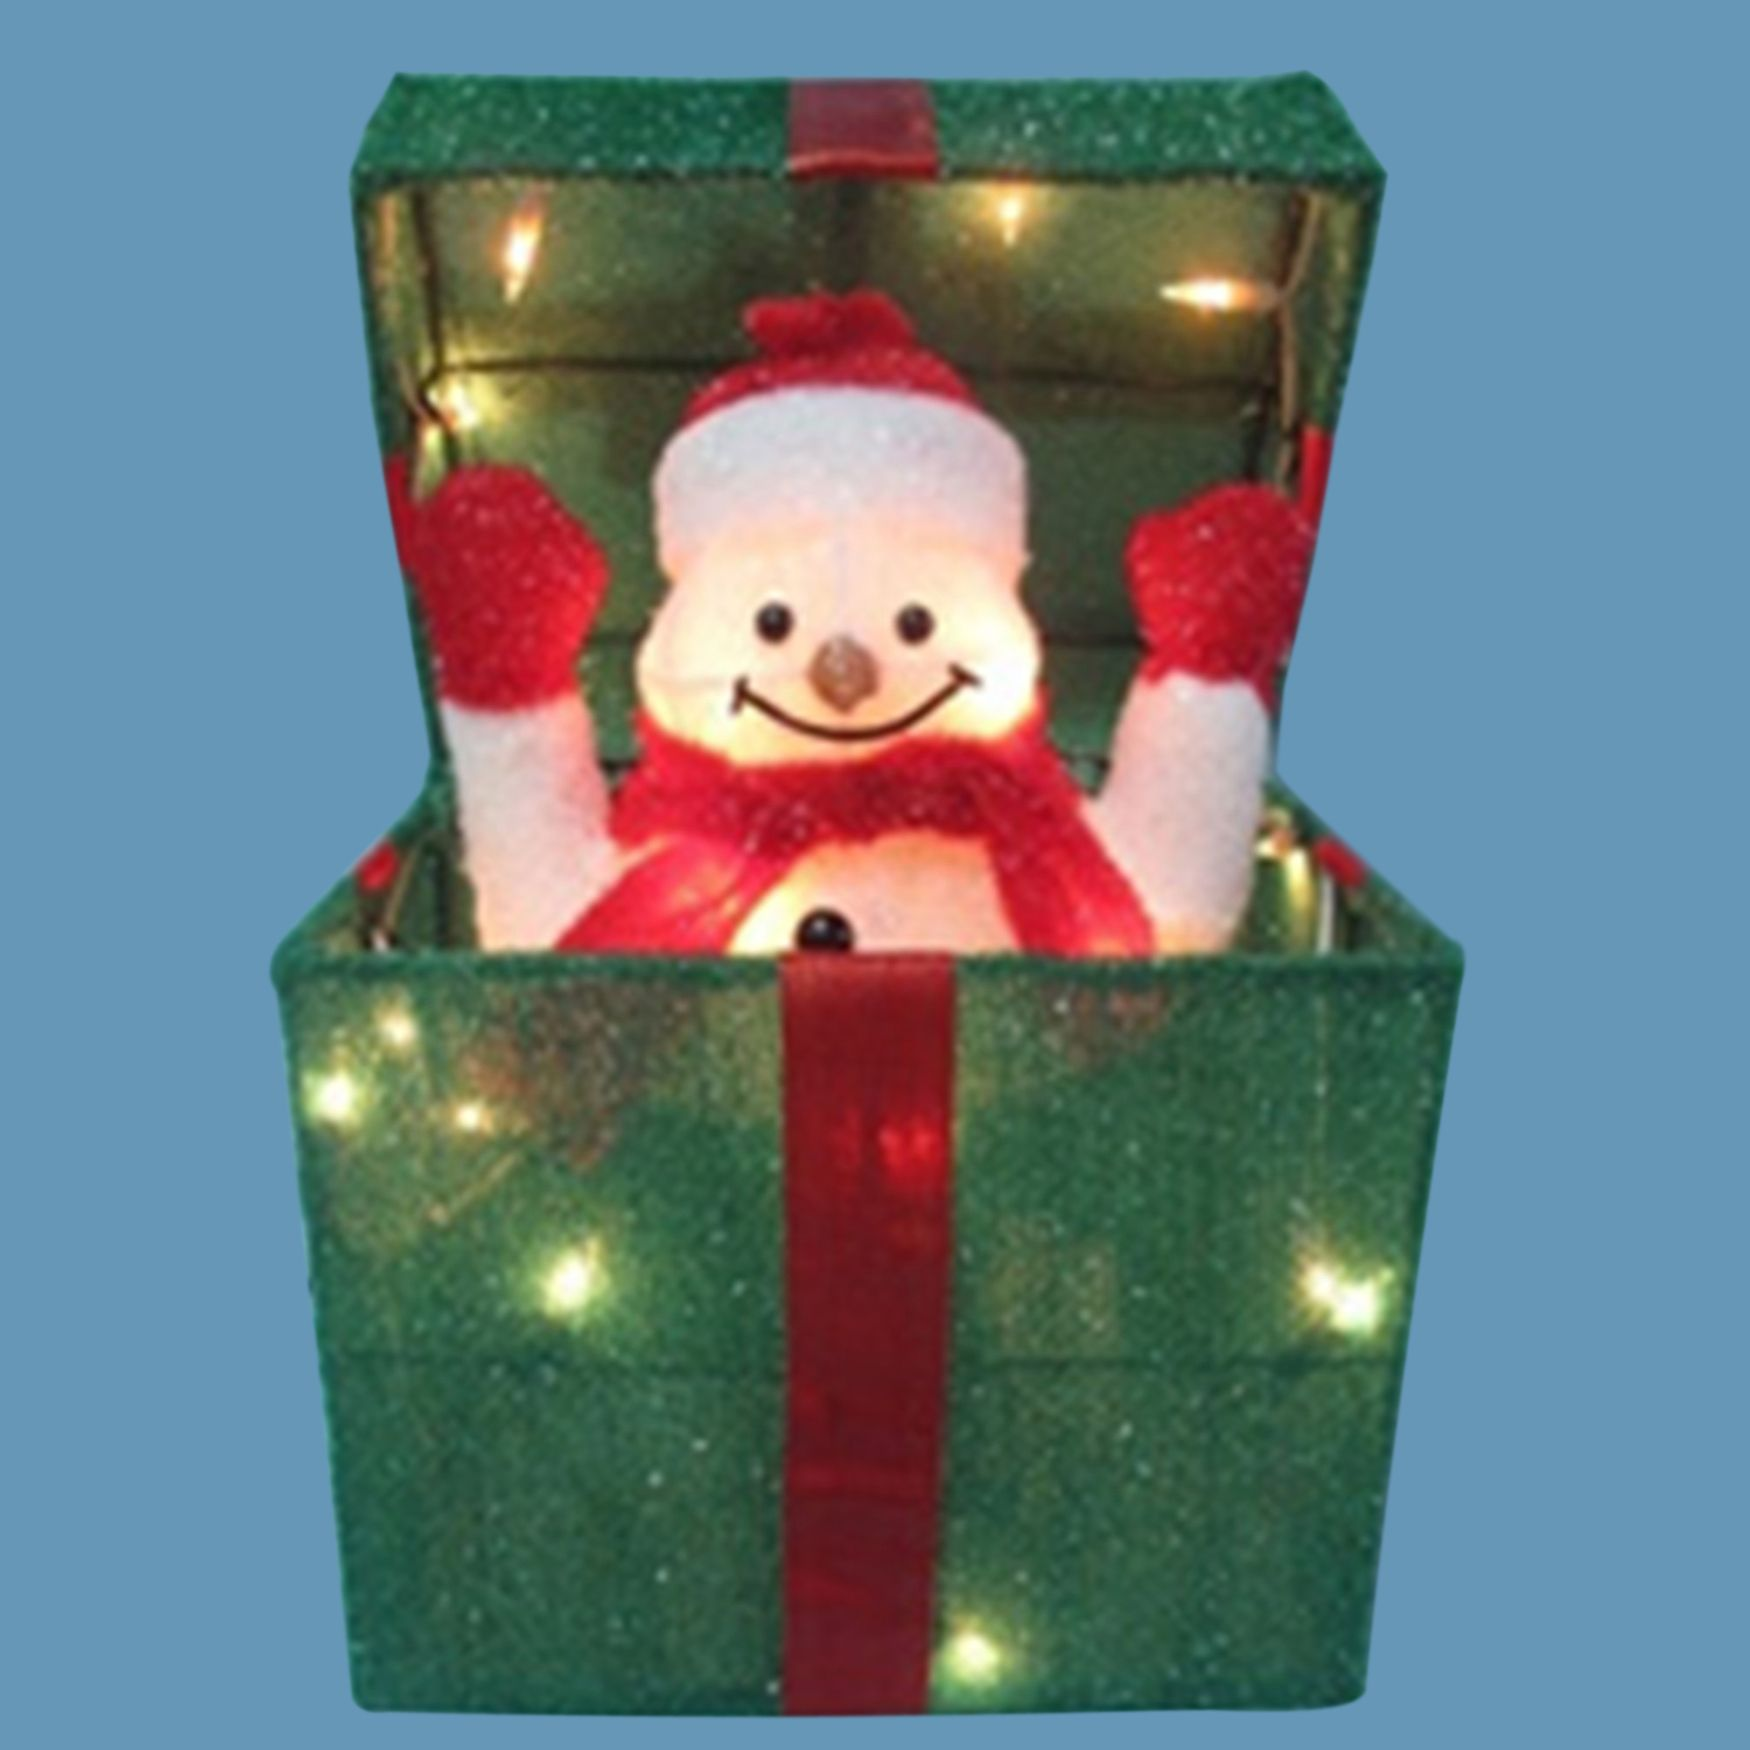 20 h animated gift box with snowman from brylane home for Brylane home christmas decor